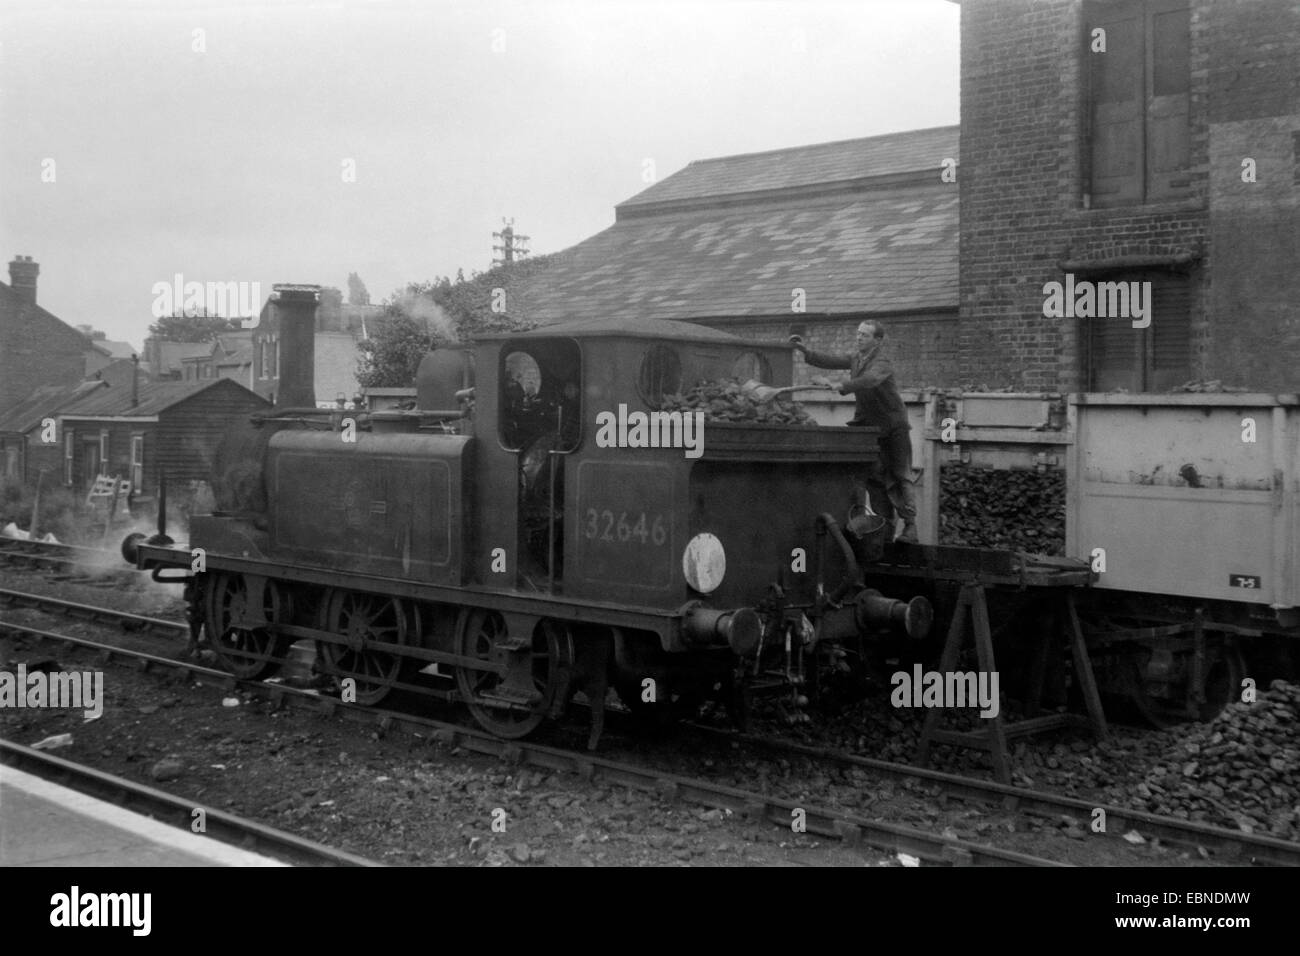 original steam locomotive class a1x number 32646 at havant hampshire england uk during the 1960s Stock Photo